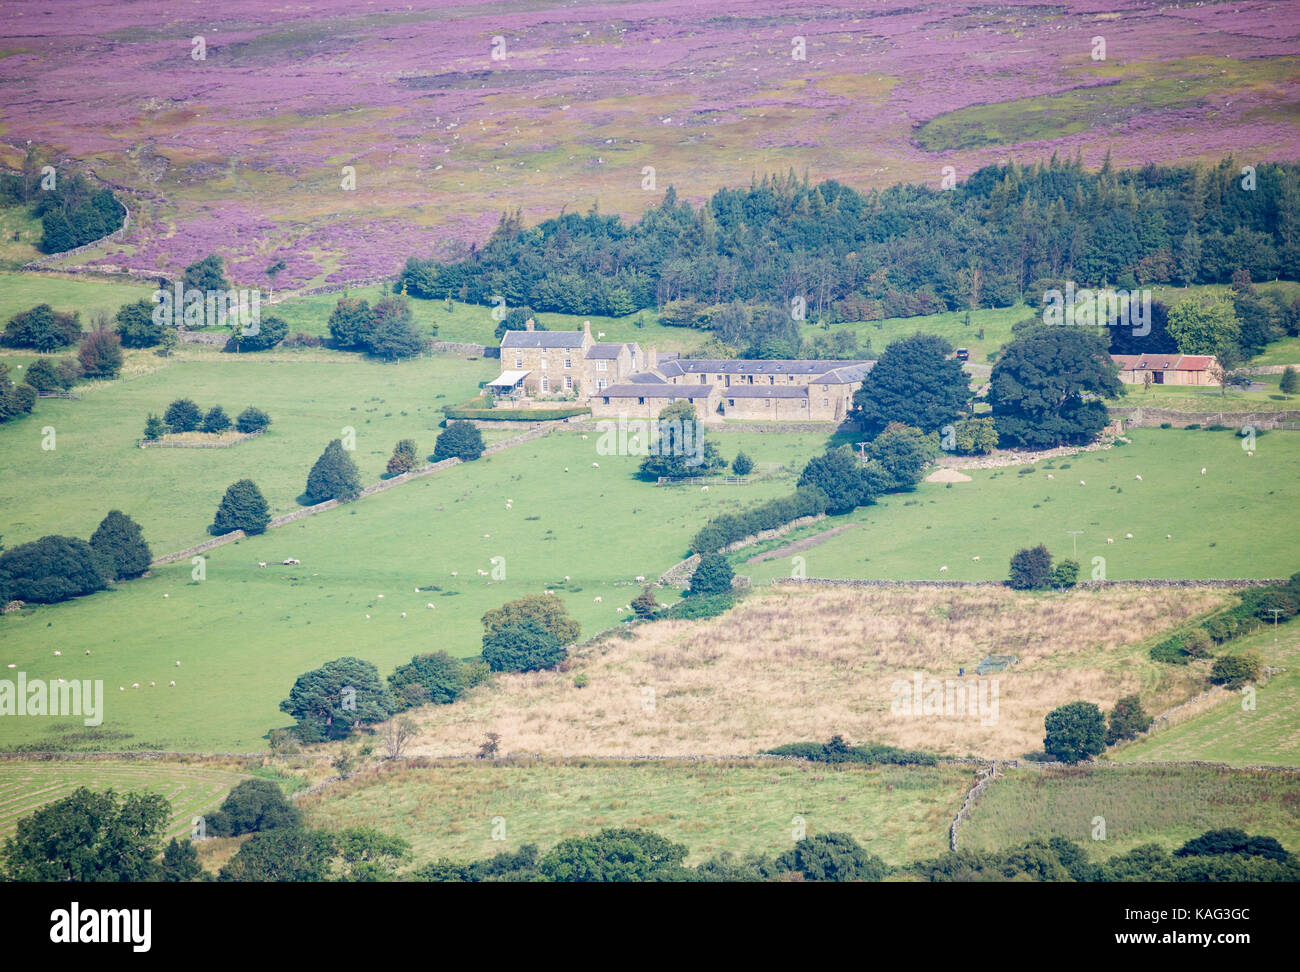 View over Westerdale from Castleton Rigg. North York Moors National Park, North Yorkshire, England. UK - Stock Image